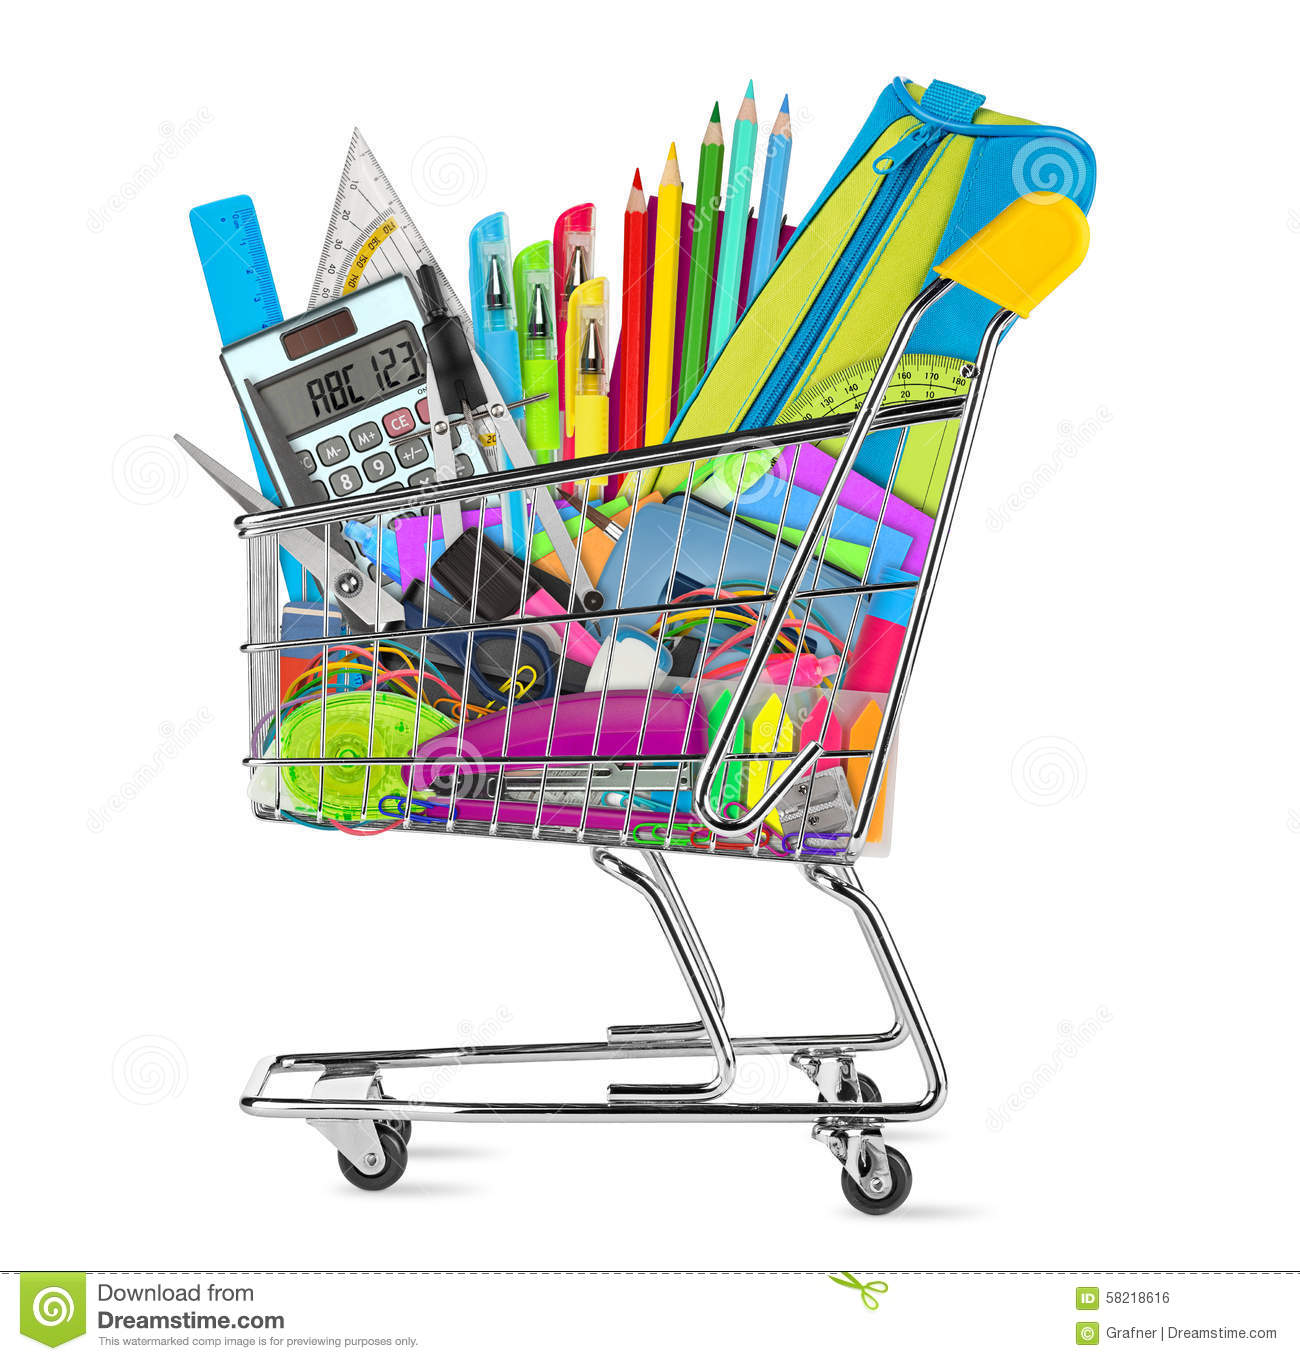 Ihram Kids For Sale Dubai: School / Office Supplies In Shopping Cart Stock Photo